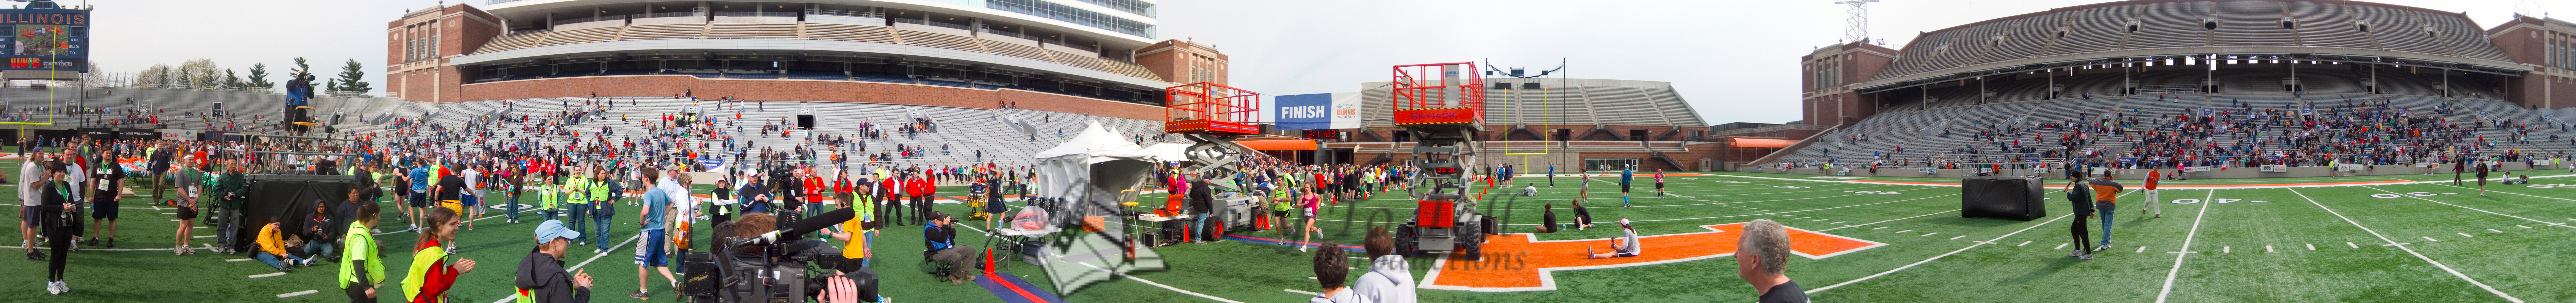 p126-1-p126-8half  Finish Time 2:11:23 Illinois Marathon 2011 Memorial Stadium Finish Line